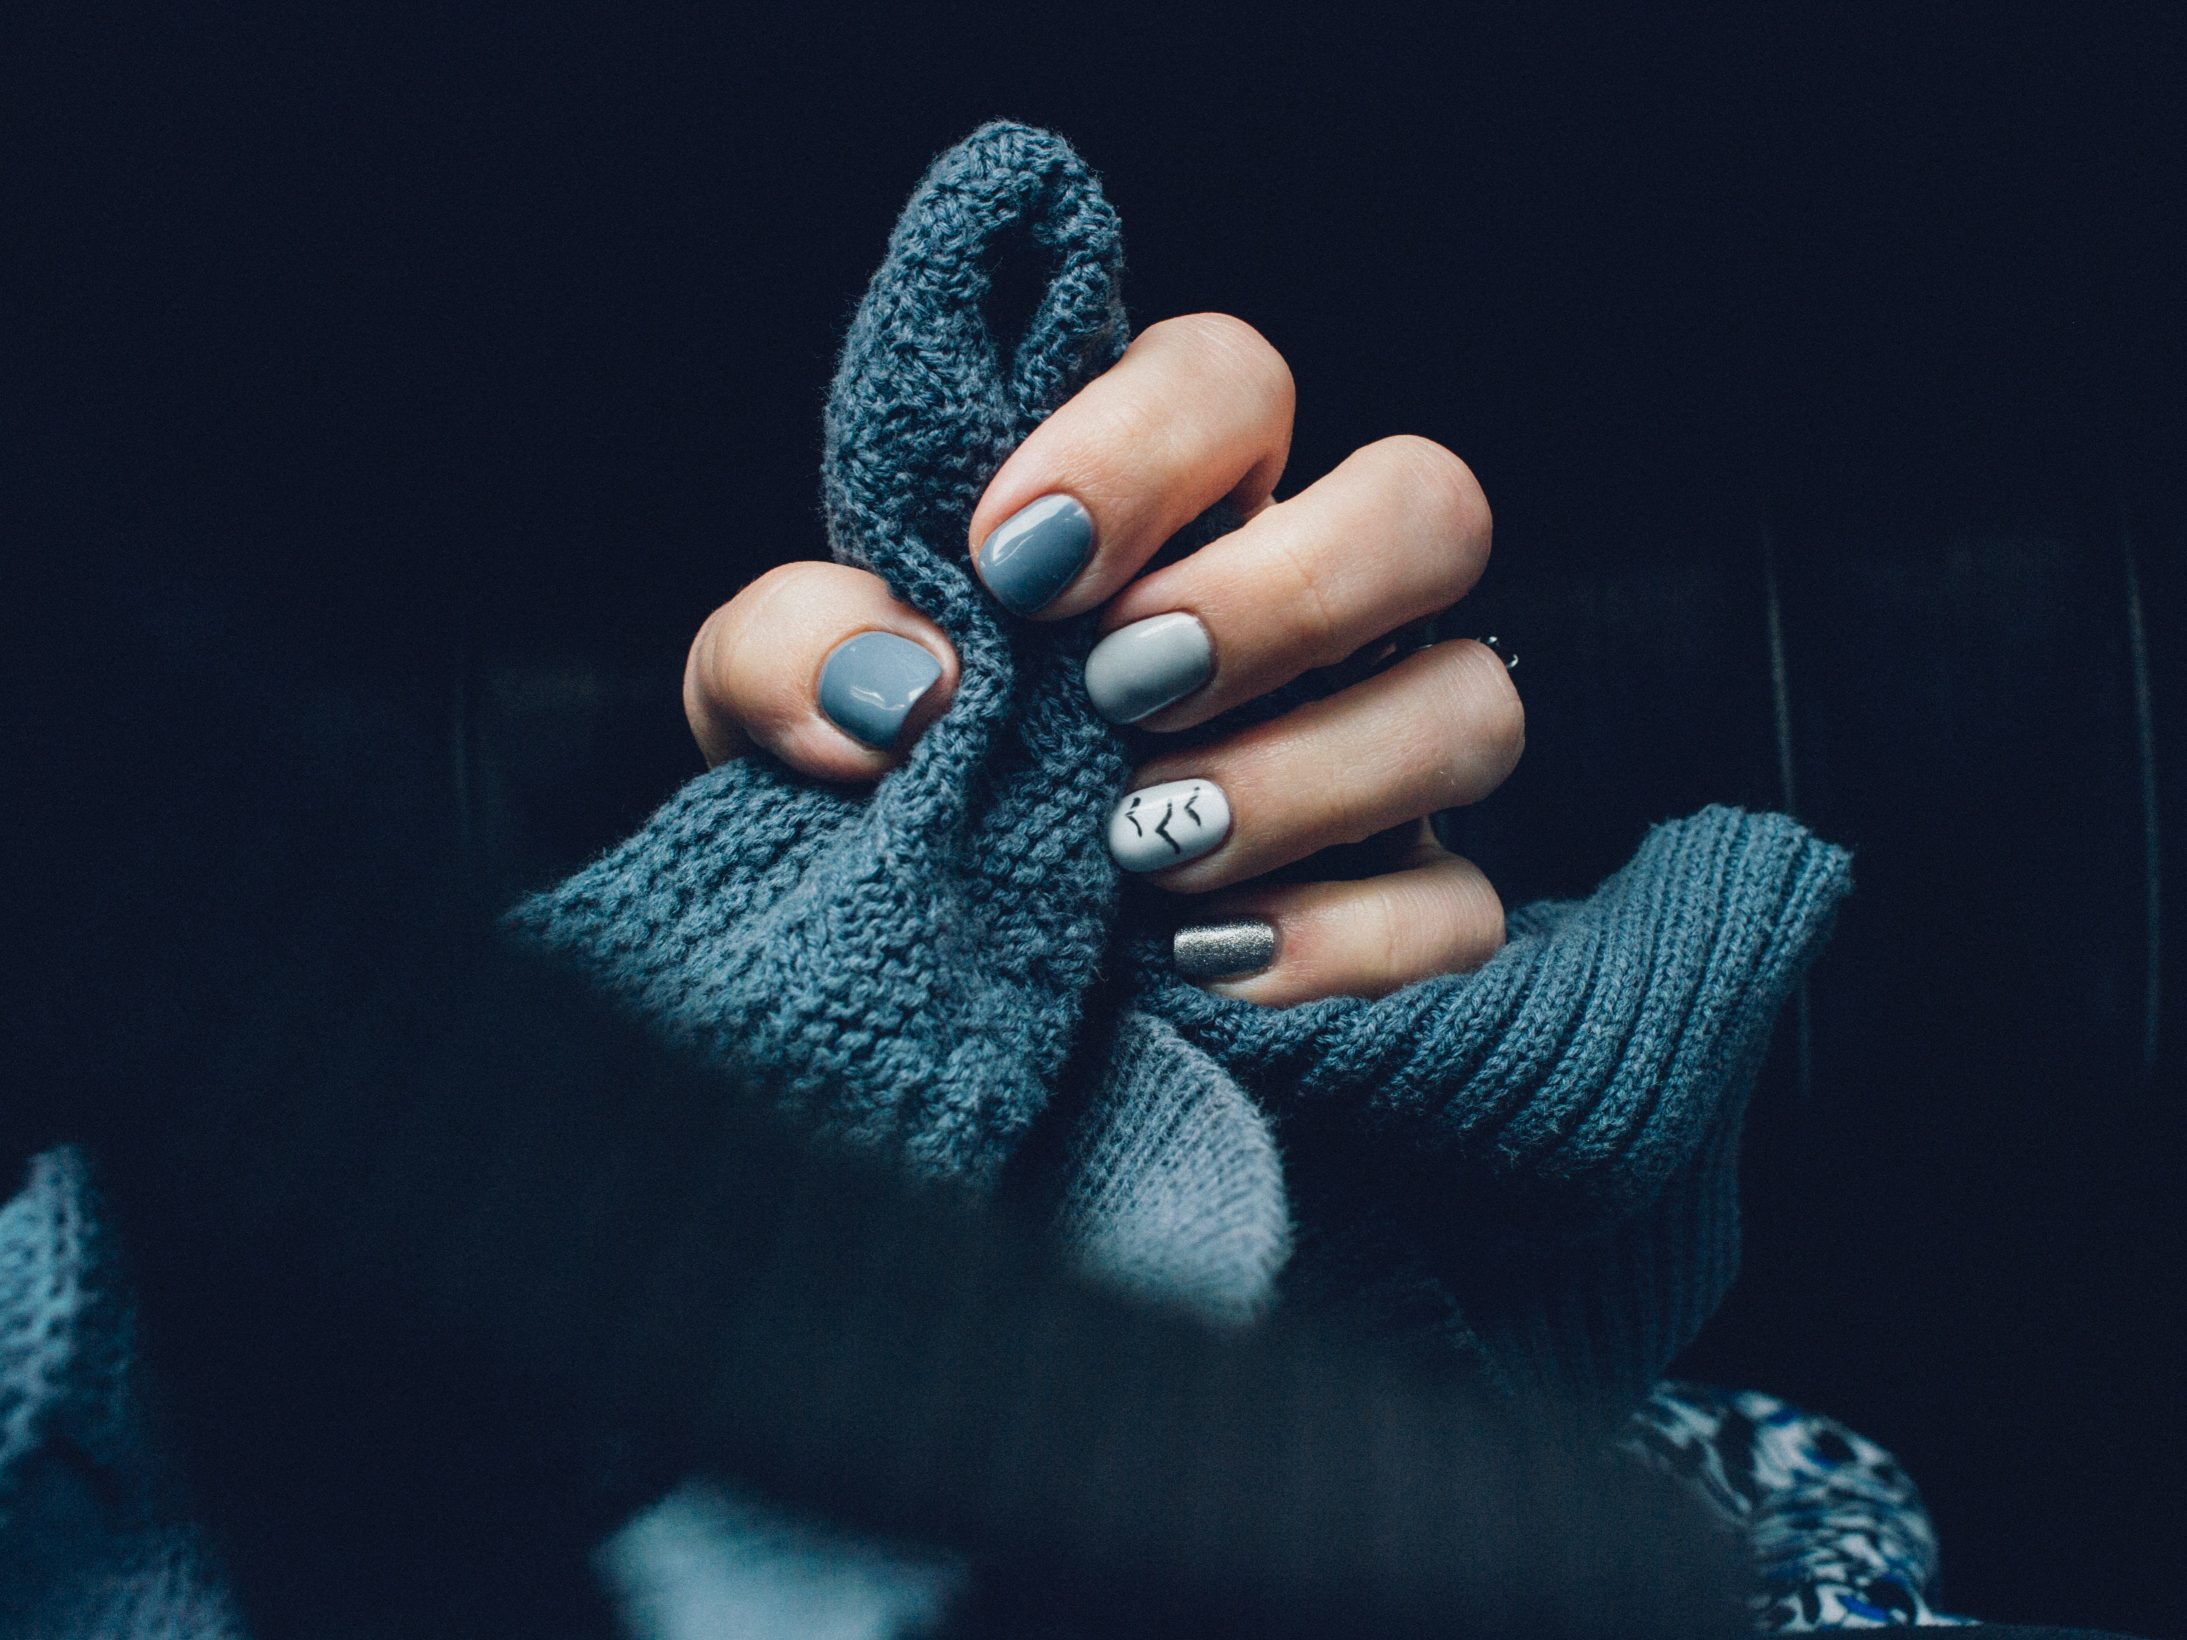 blue-knitted-clothing-and-nails-2567326